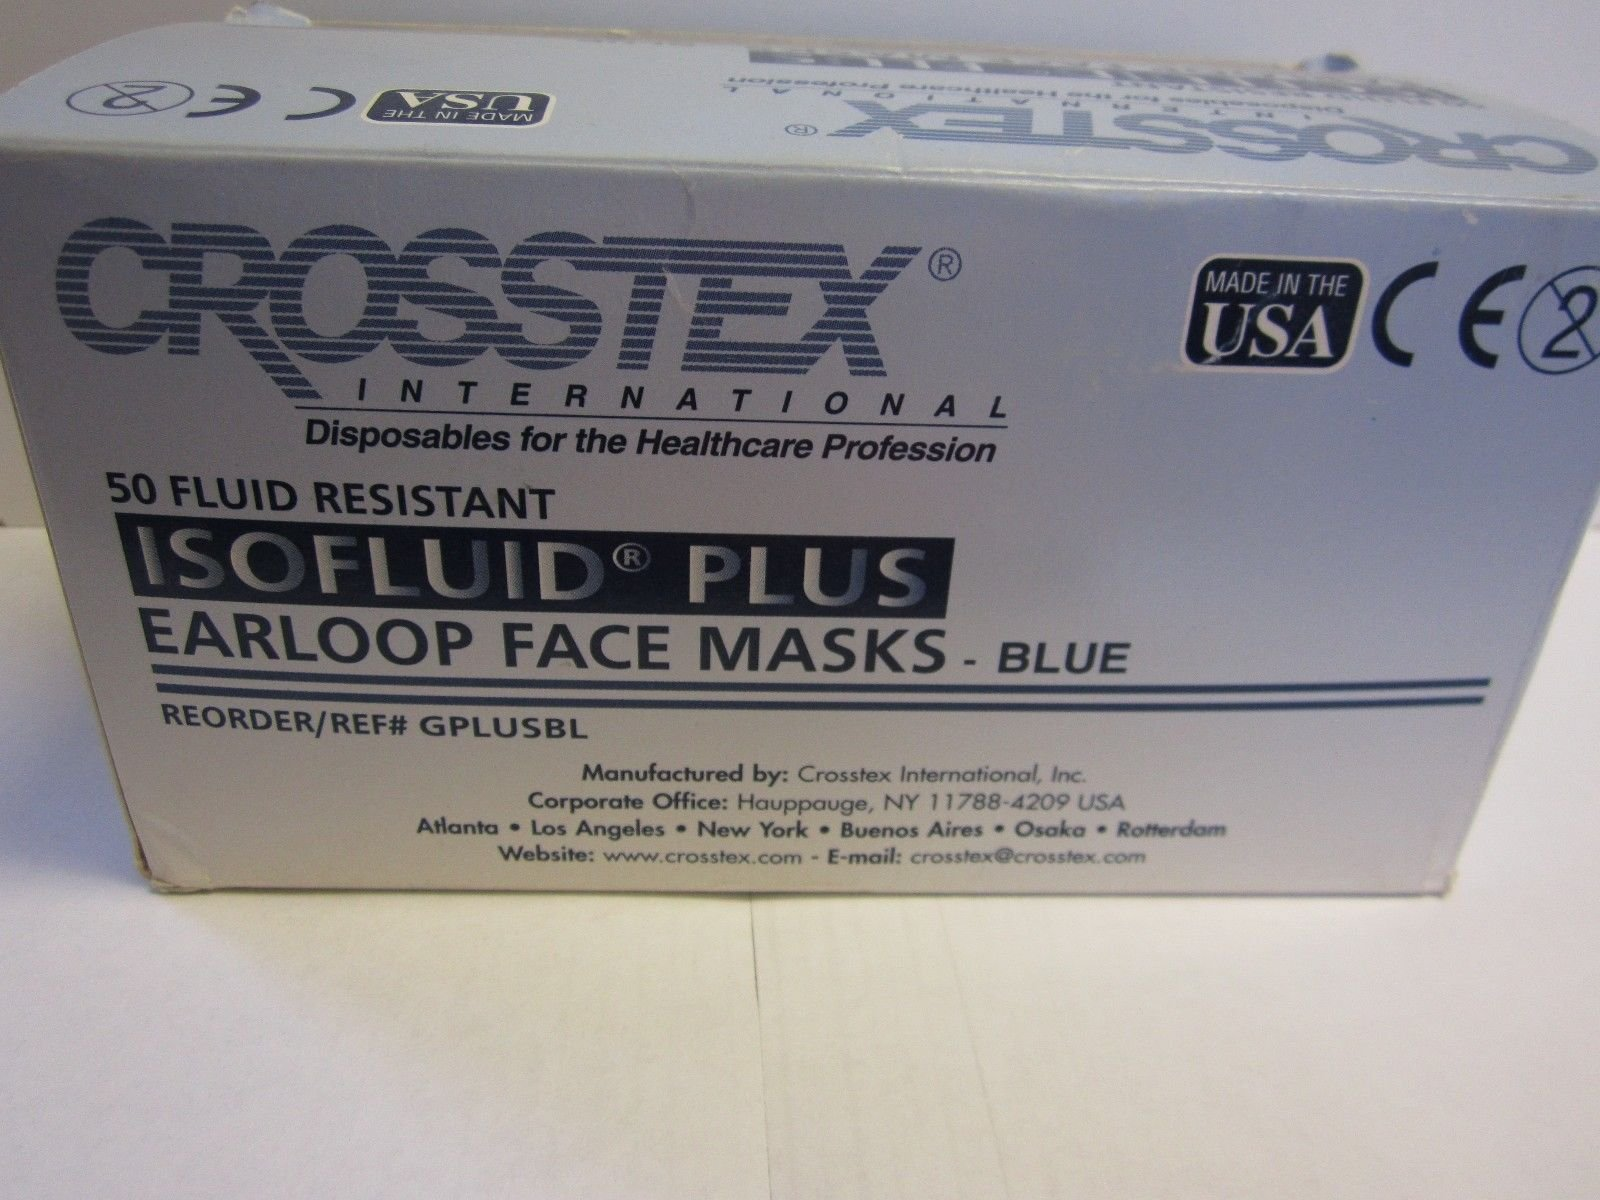 Crosstex Gplusbl Isofluid Plus Earloop Masks Blue by Crosstex